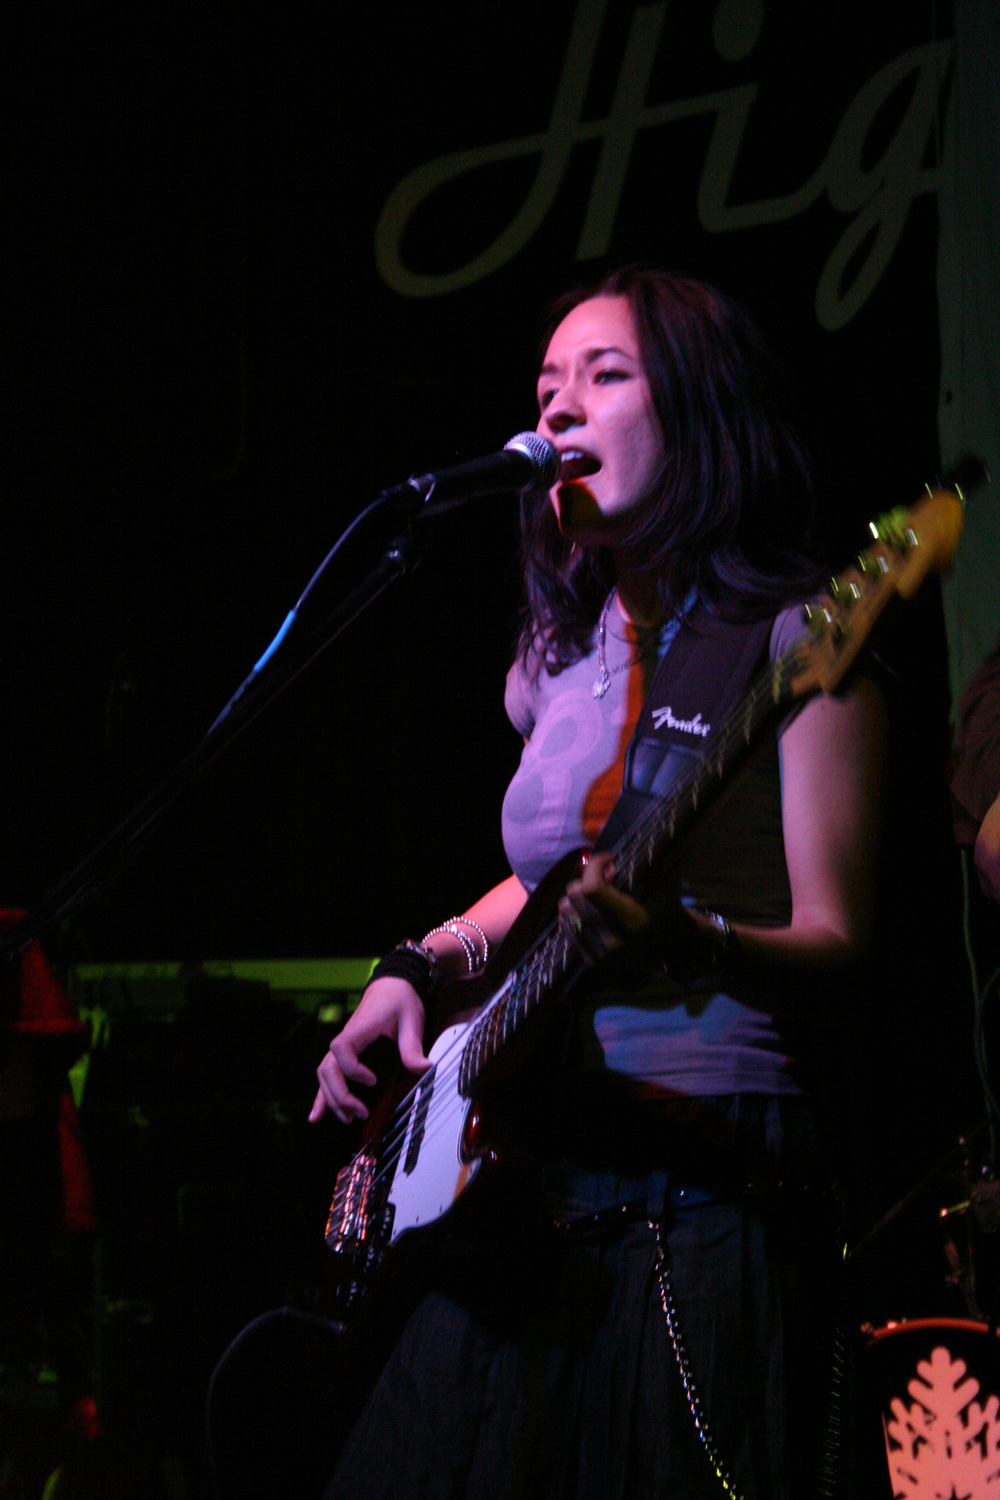 naomi_hall_live_at_high_dive_jessica_totten.jpg